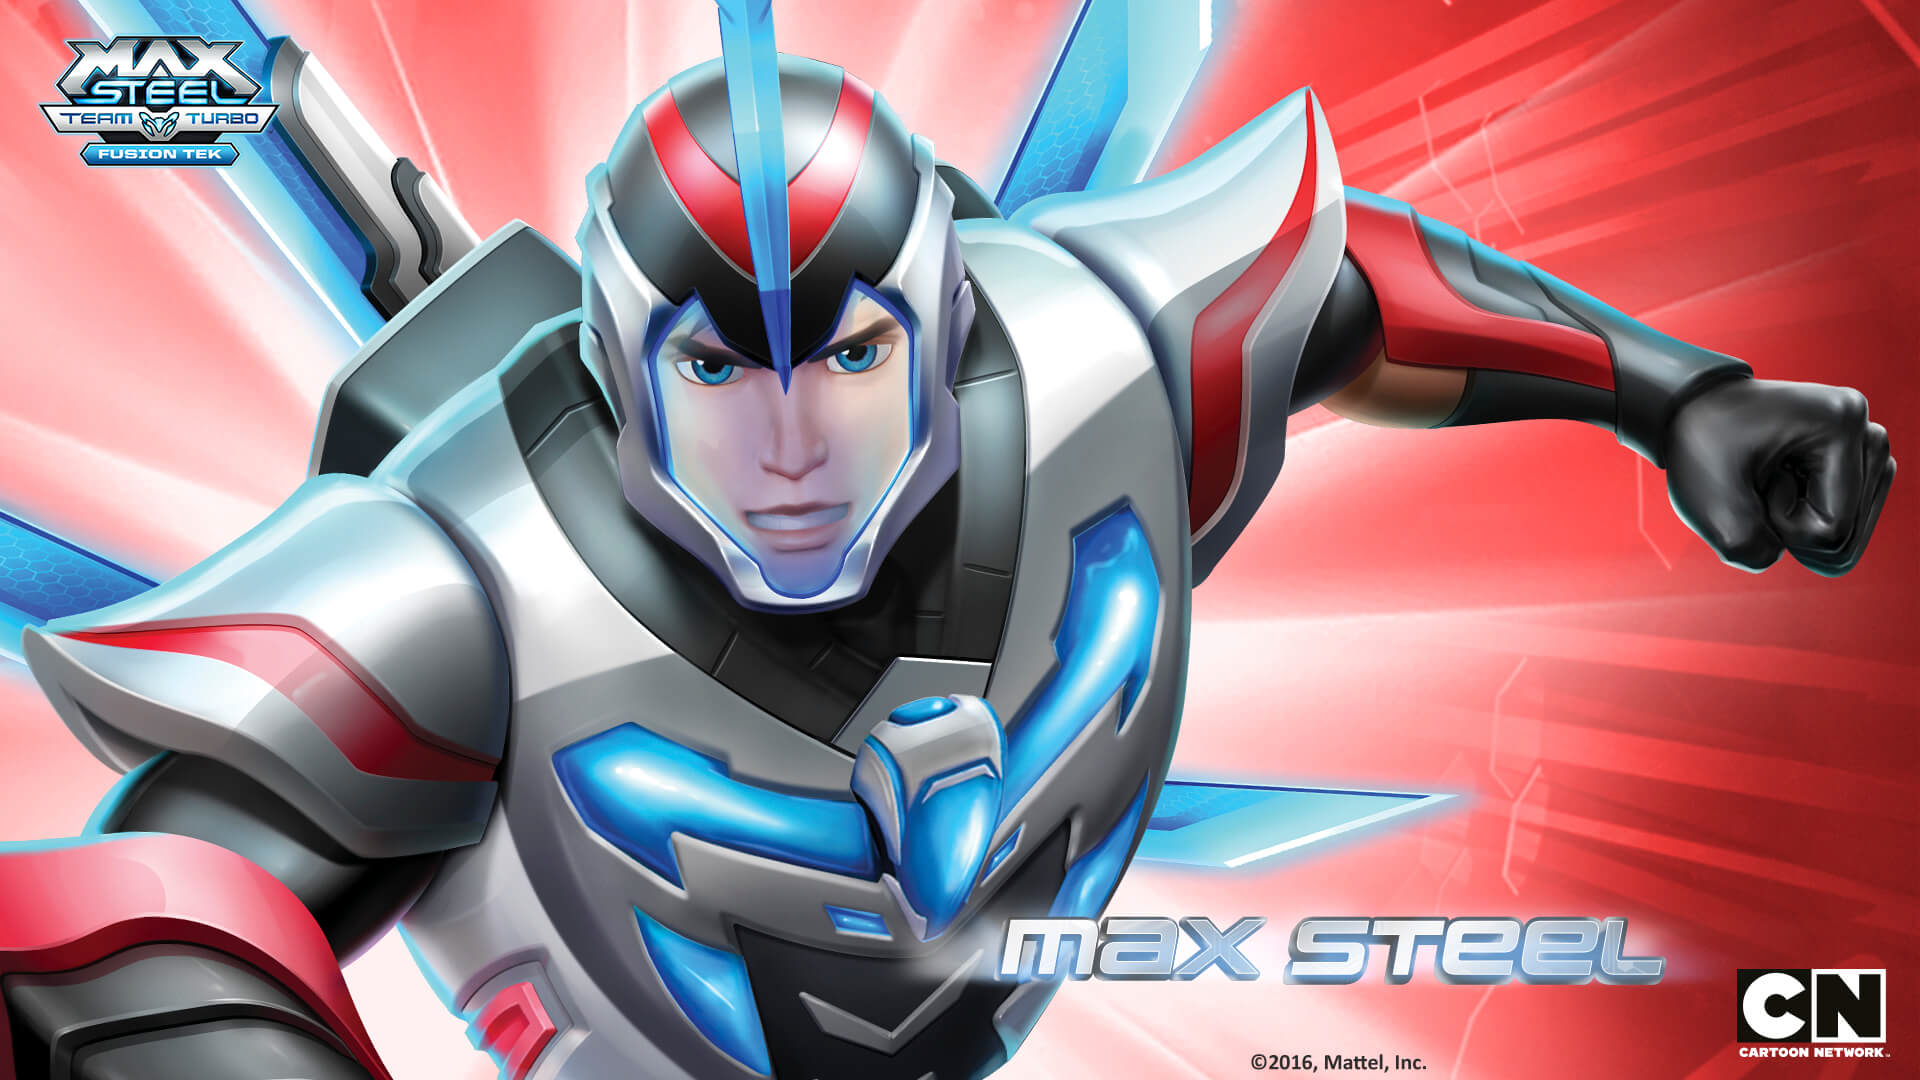 image max steel png max steel reboot wiki fandom powered by wikia